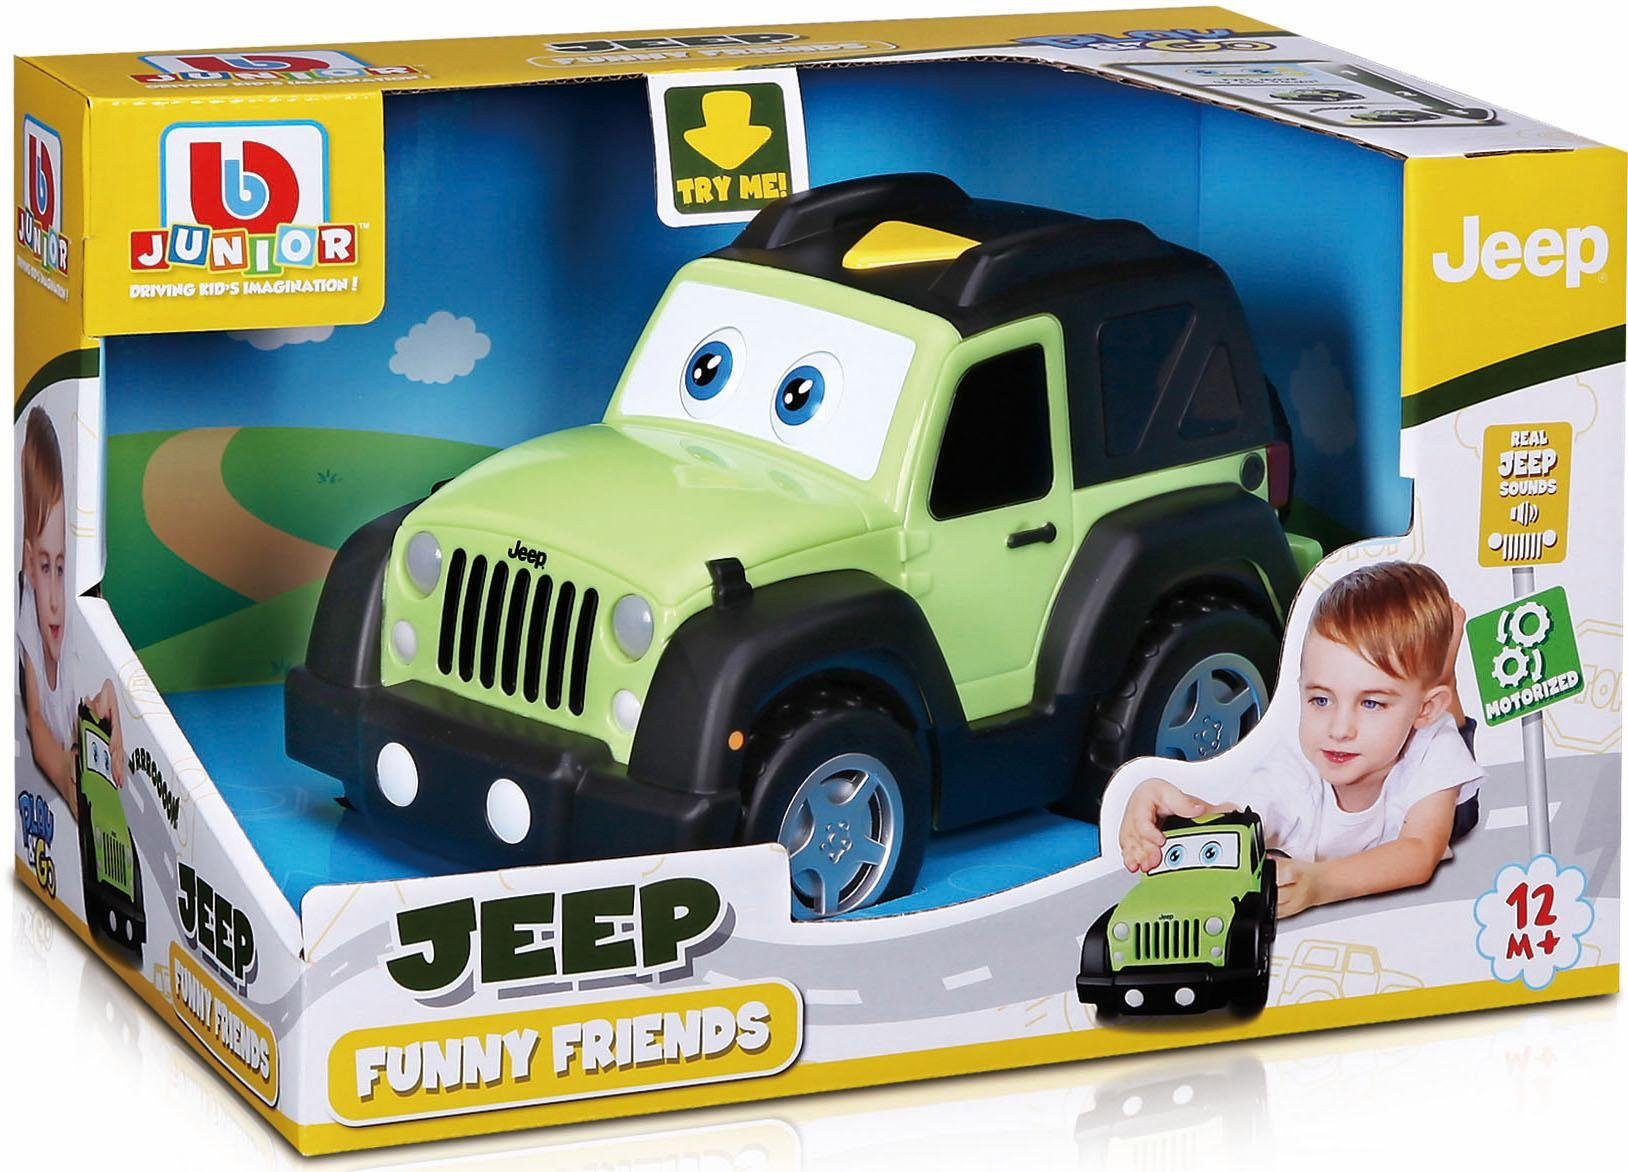 bbJunior Spielzeugauto, »Jeep Funny Friend Jeep Wrangler Unlimited«